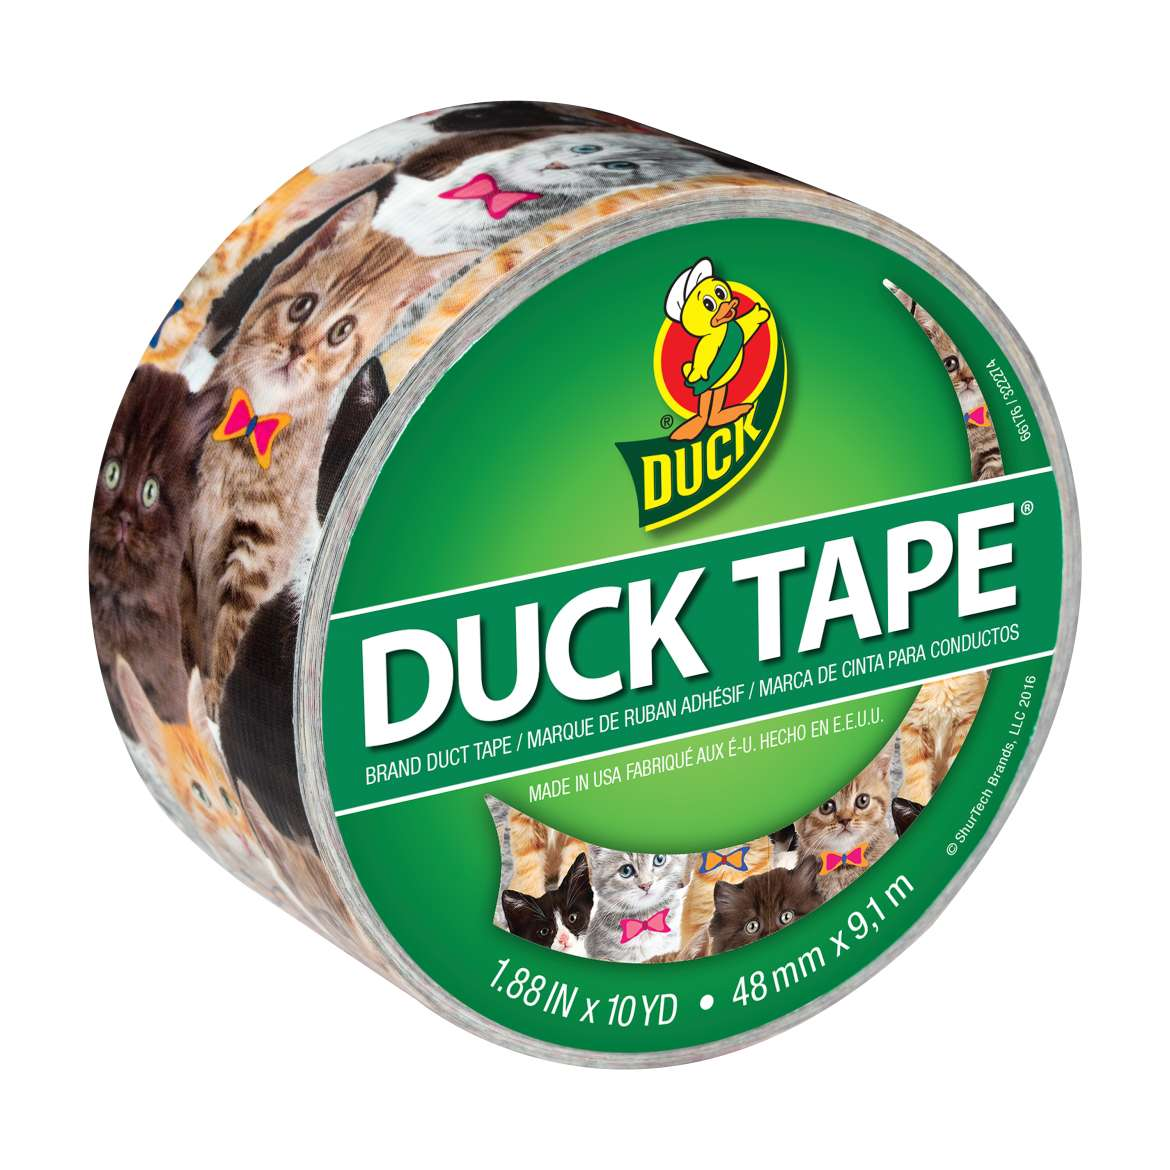 Printed Duck Tape® Brand Duct Tape - Kitty Kitty, 1.88 in. x 10 yd. Image